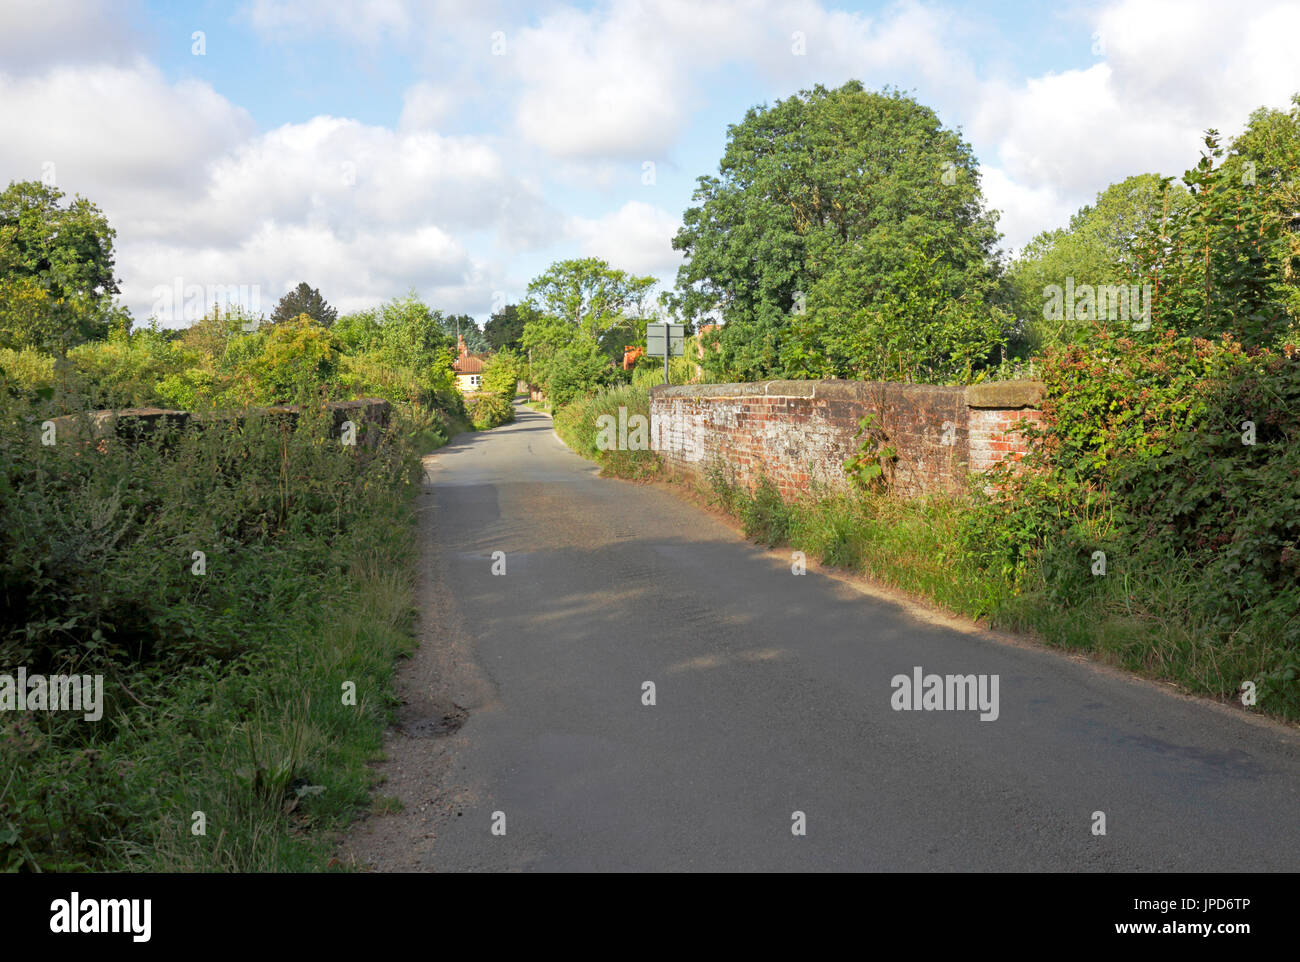 A view of a country road with old bridge over the River Ant at Briggate, near North Walsham, Norfolk, England, United Kingdom. - Stock Image